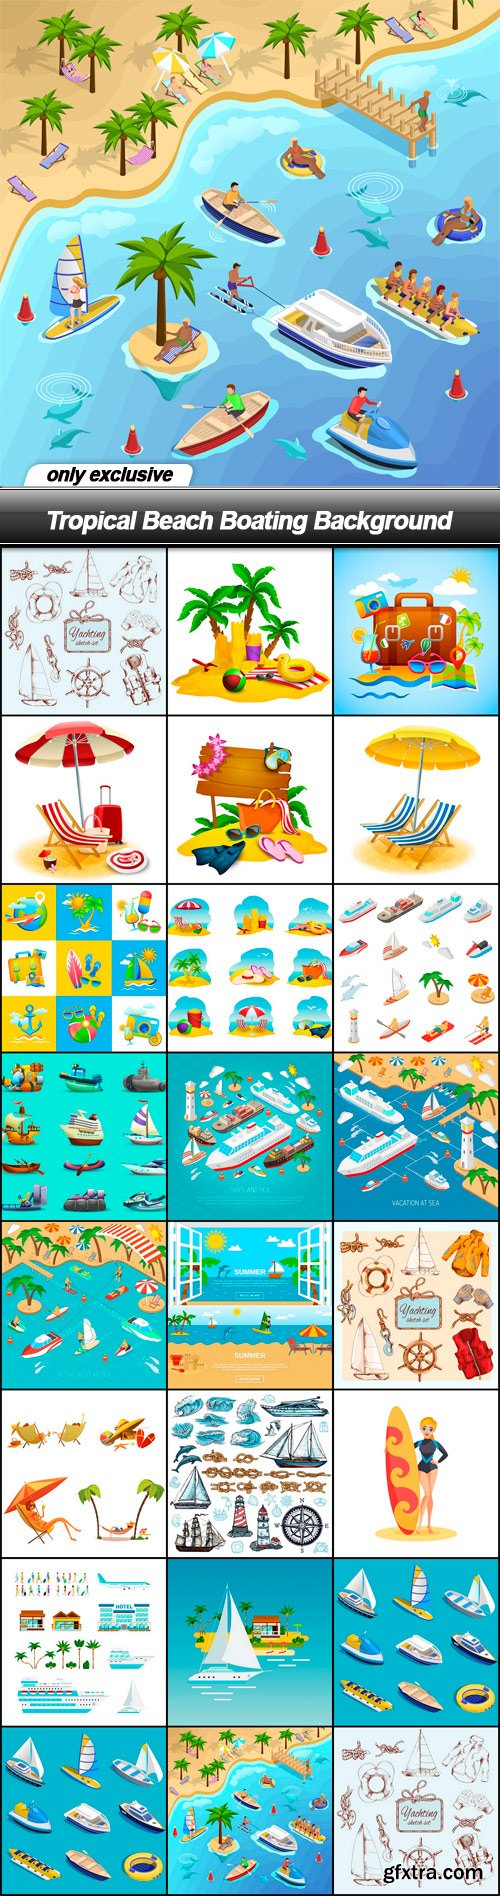 Tropical Beach Boating Background - 23 EPS